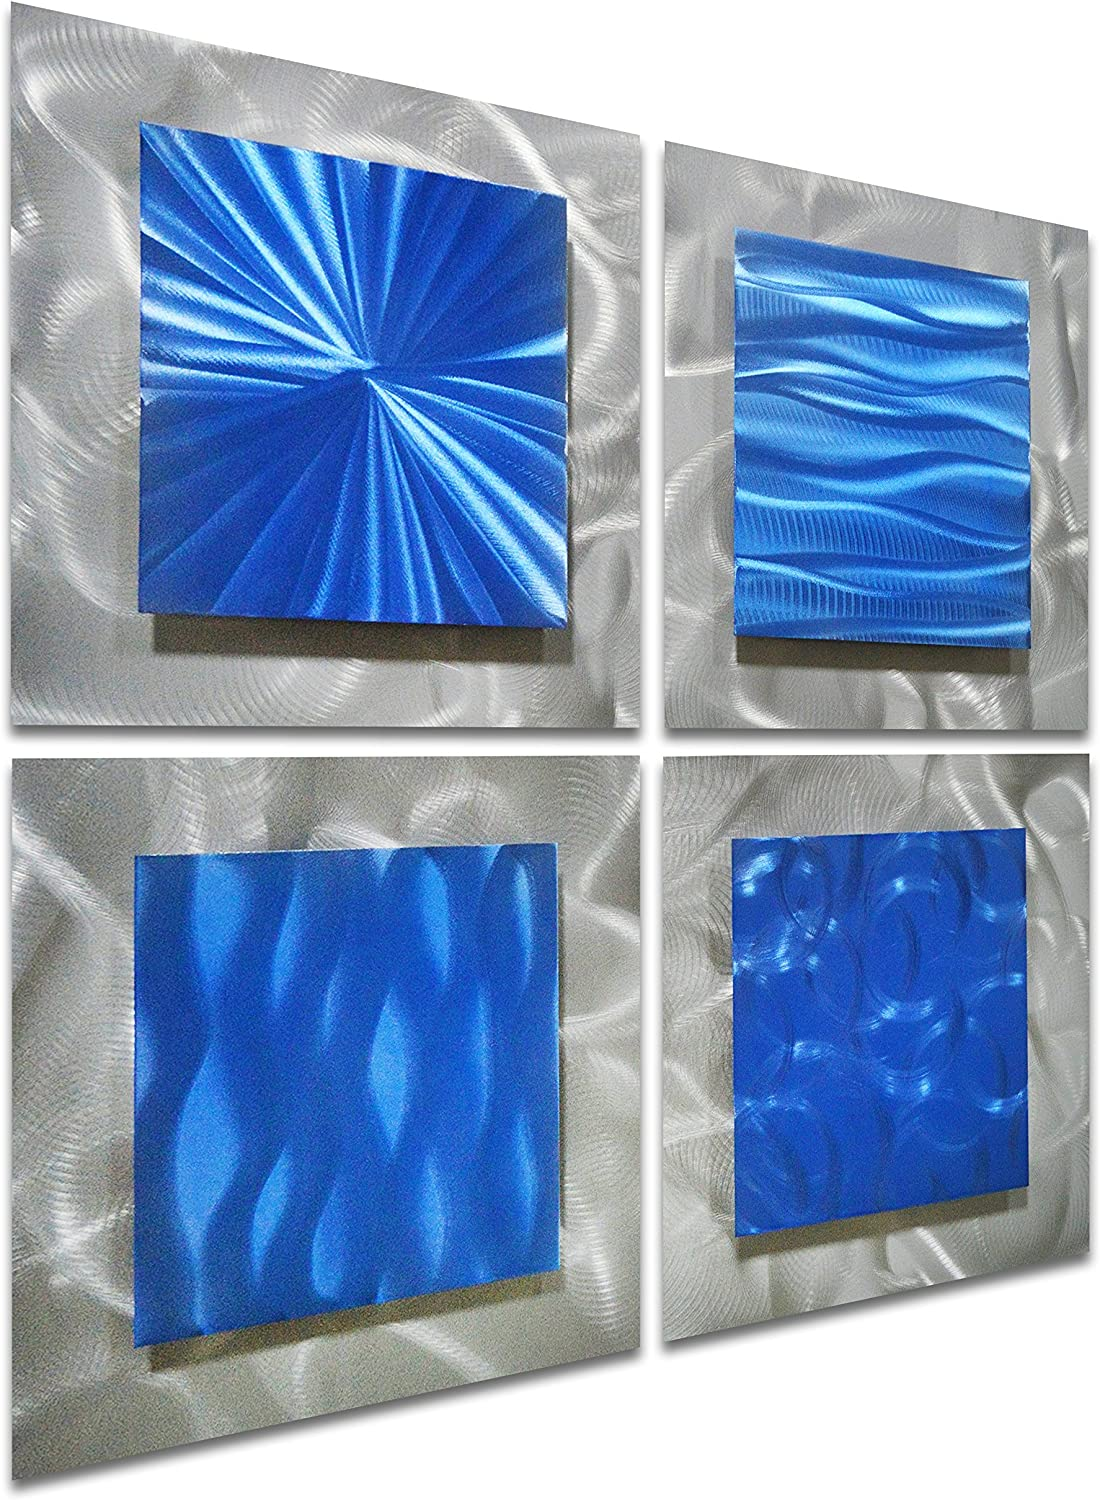 "Pure Art Scent of Freedom - Small Blue Abstract Metal Wall Art Decor - Modern Artwork of 4 Panels - Hanging Sculpture of 25"" x 25"" for Kitchen or Bedroom"